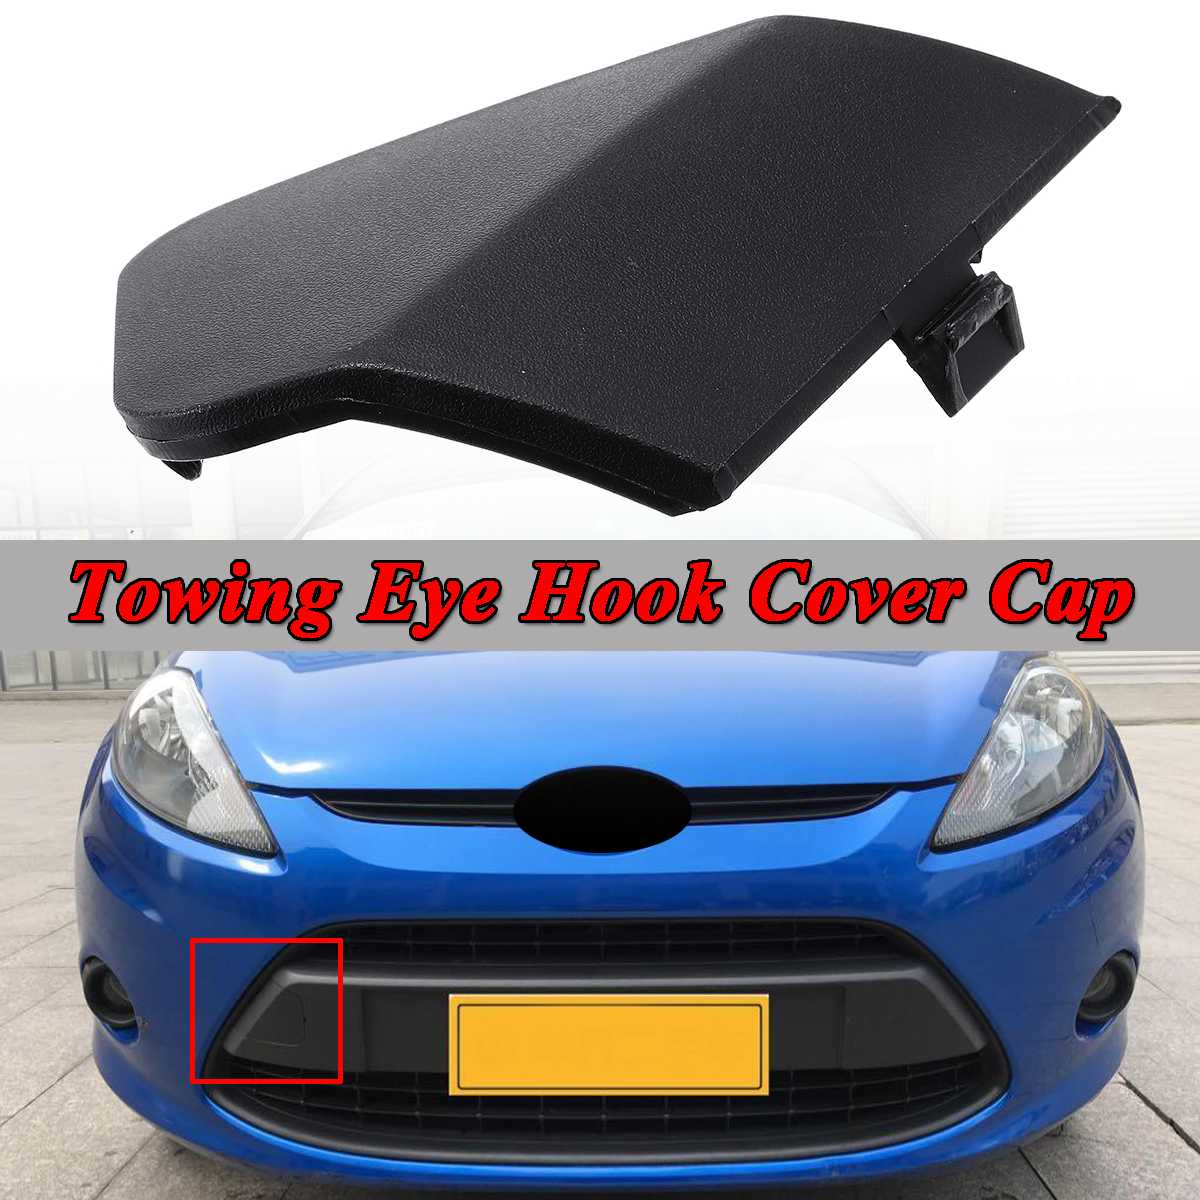 FRONT BUMPER TOW BAR CAP COVER FOR FORD FOCUS 3 III